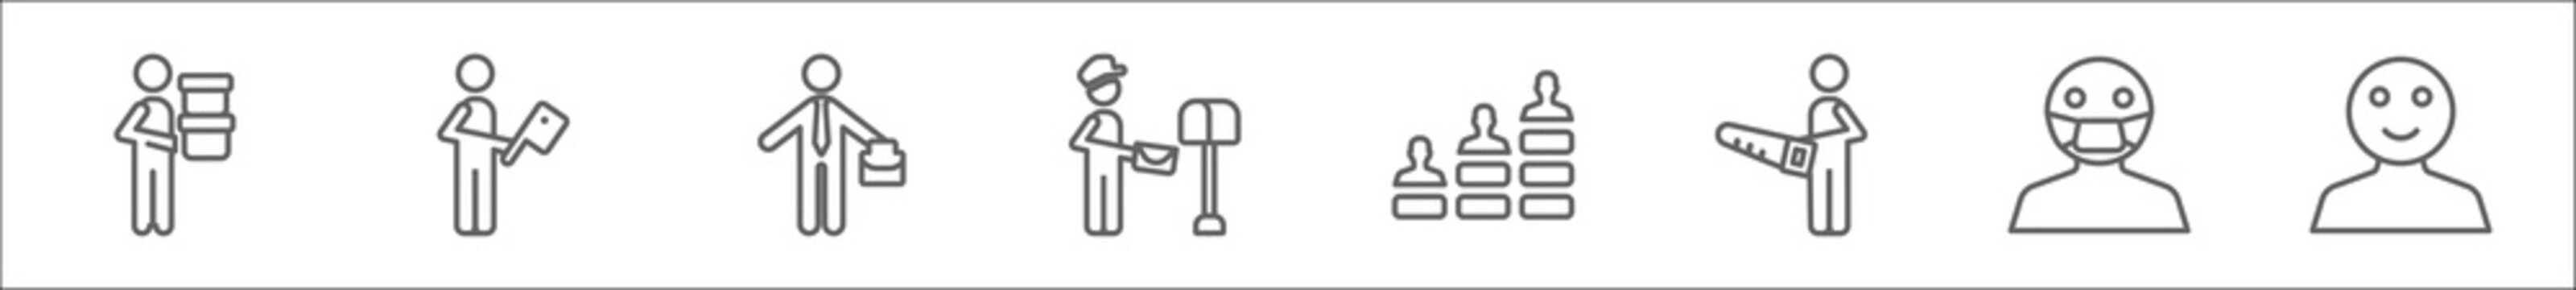 outline set of people line icons. linear vector icons such as men carrying a box, butcher with knife, businessman with suitcase, postman working, team work success, carpenter working, sick smile,